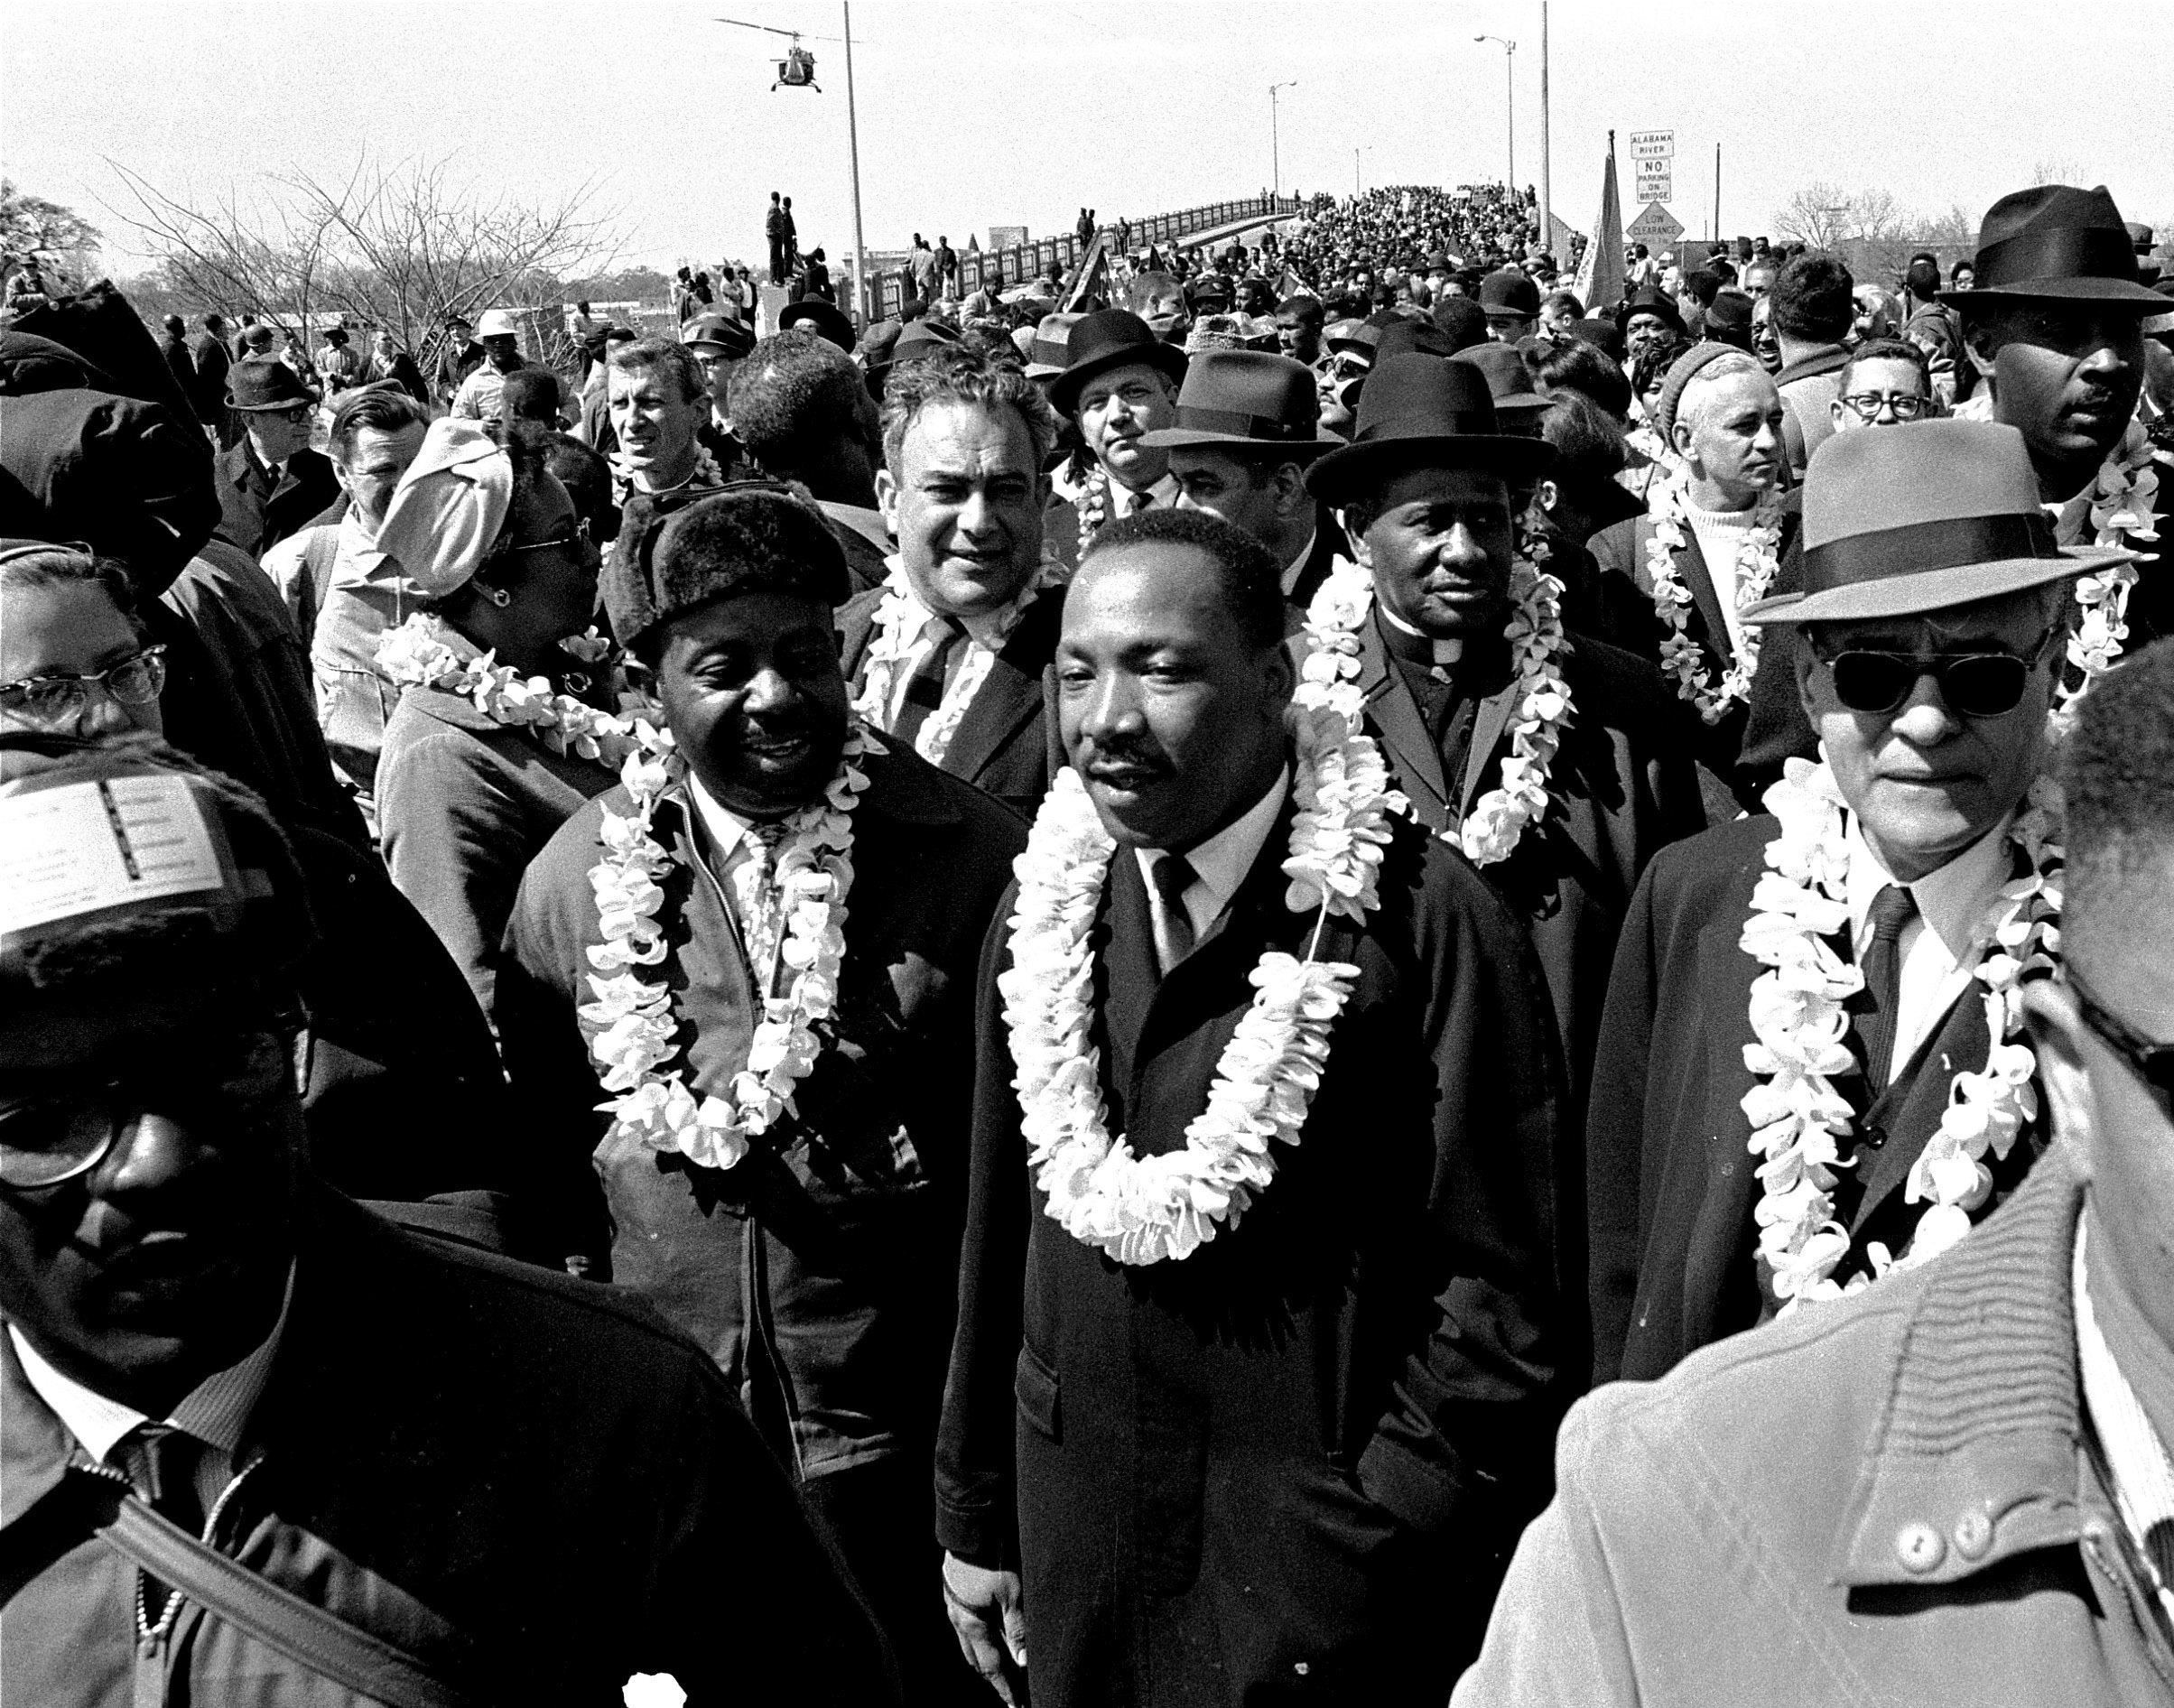 Martin Luther King leading throng of marchers across bridge (© AP Images)